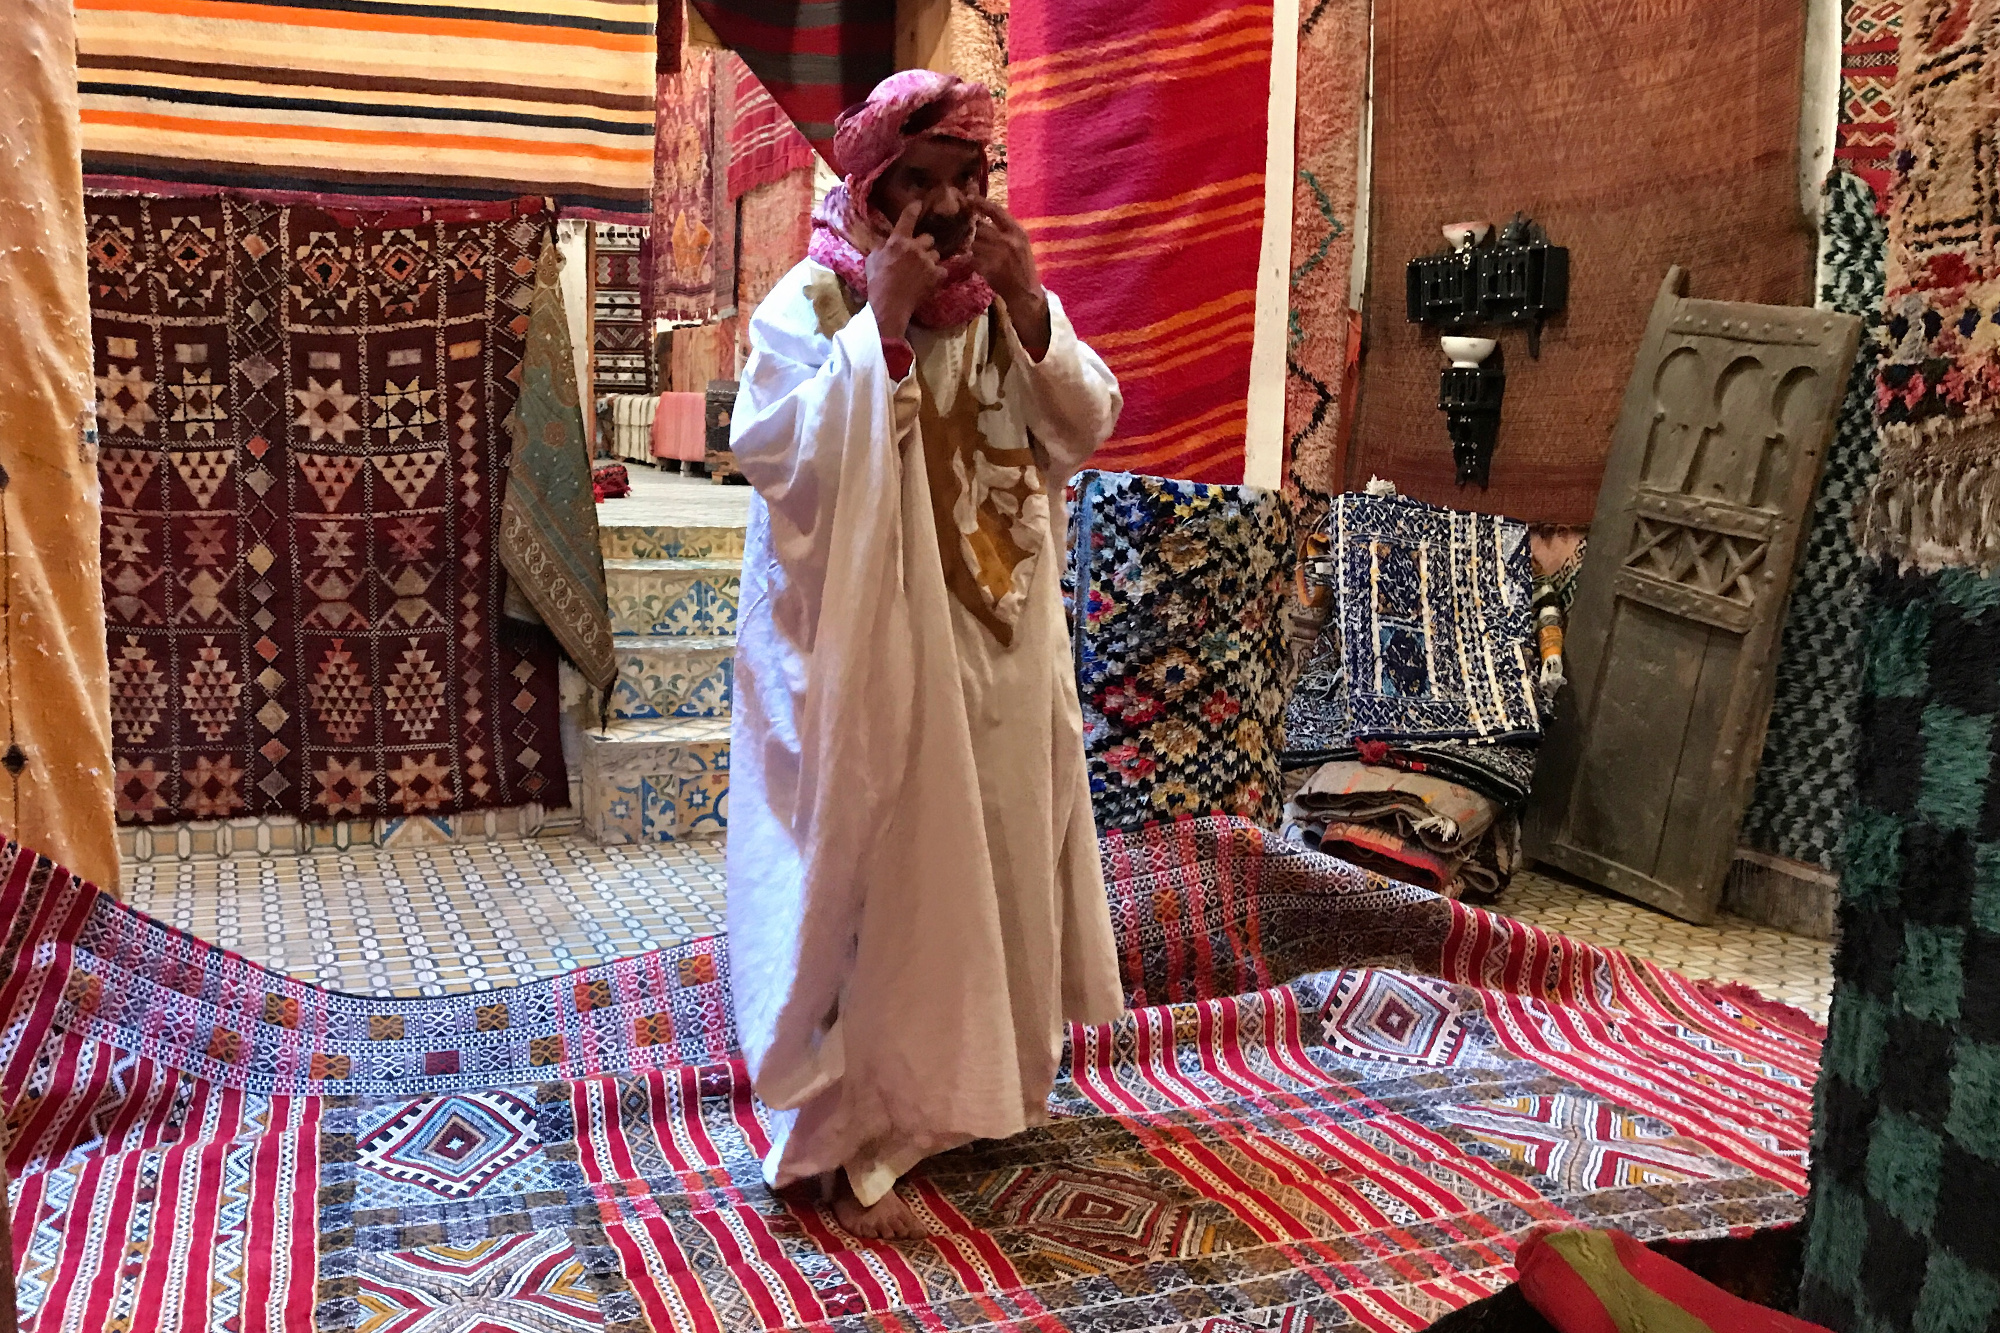 A rug shop in Morocco